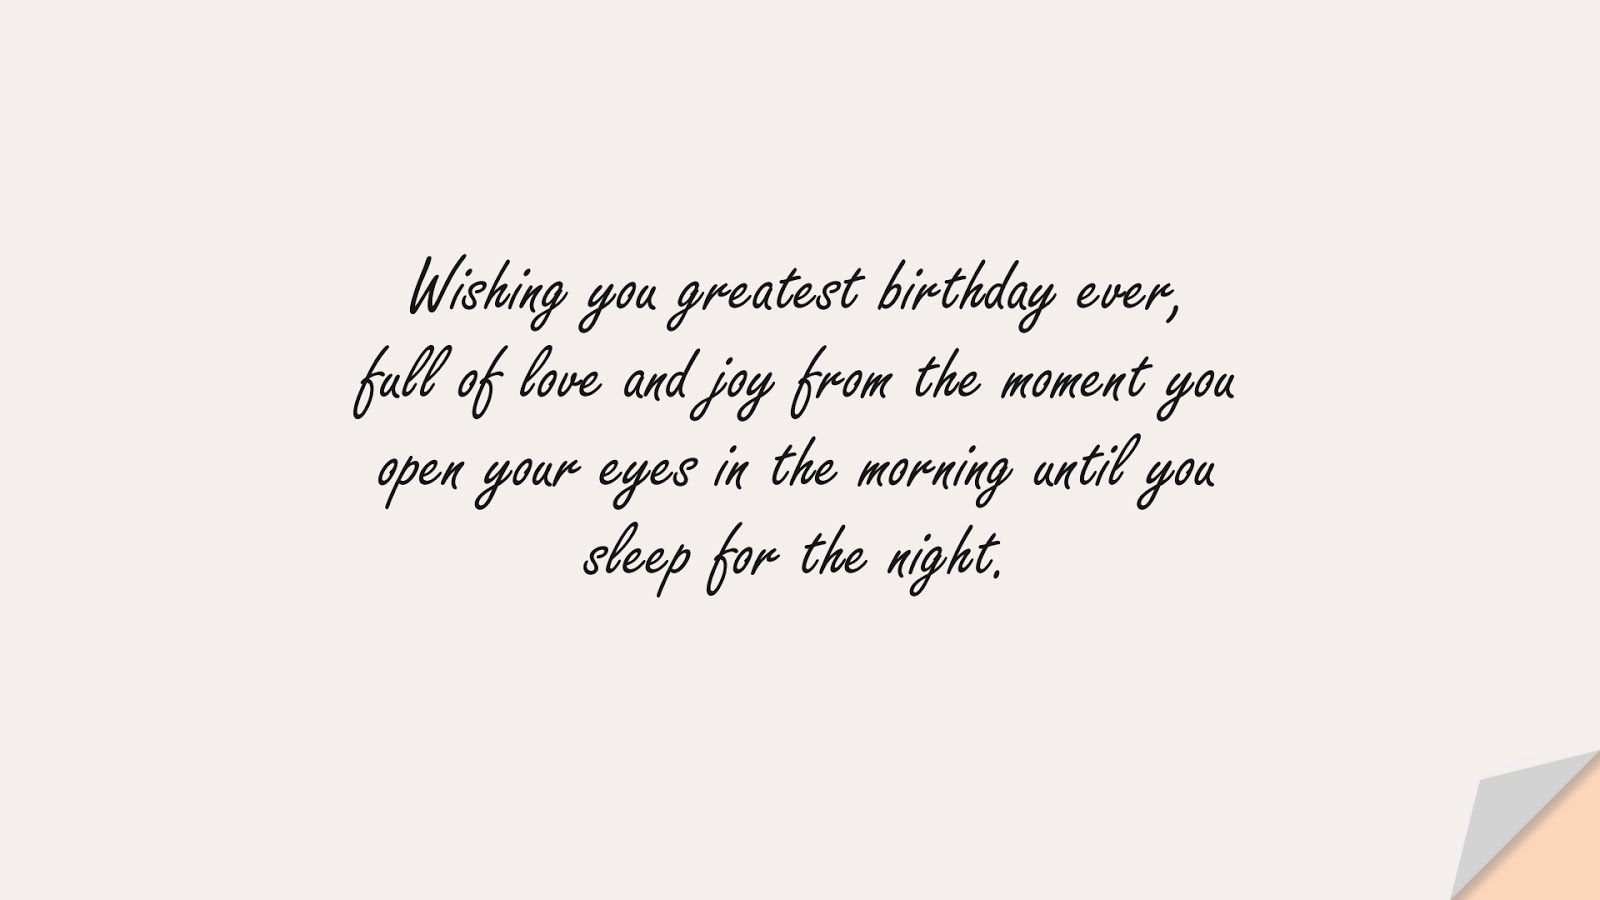 Wishing you greatest birthday ever, full of love and joy from the moment you open your eyes in the morning until you sleep for the night.FALSE